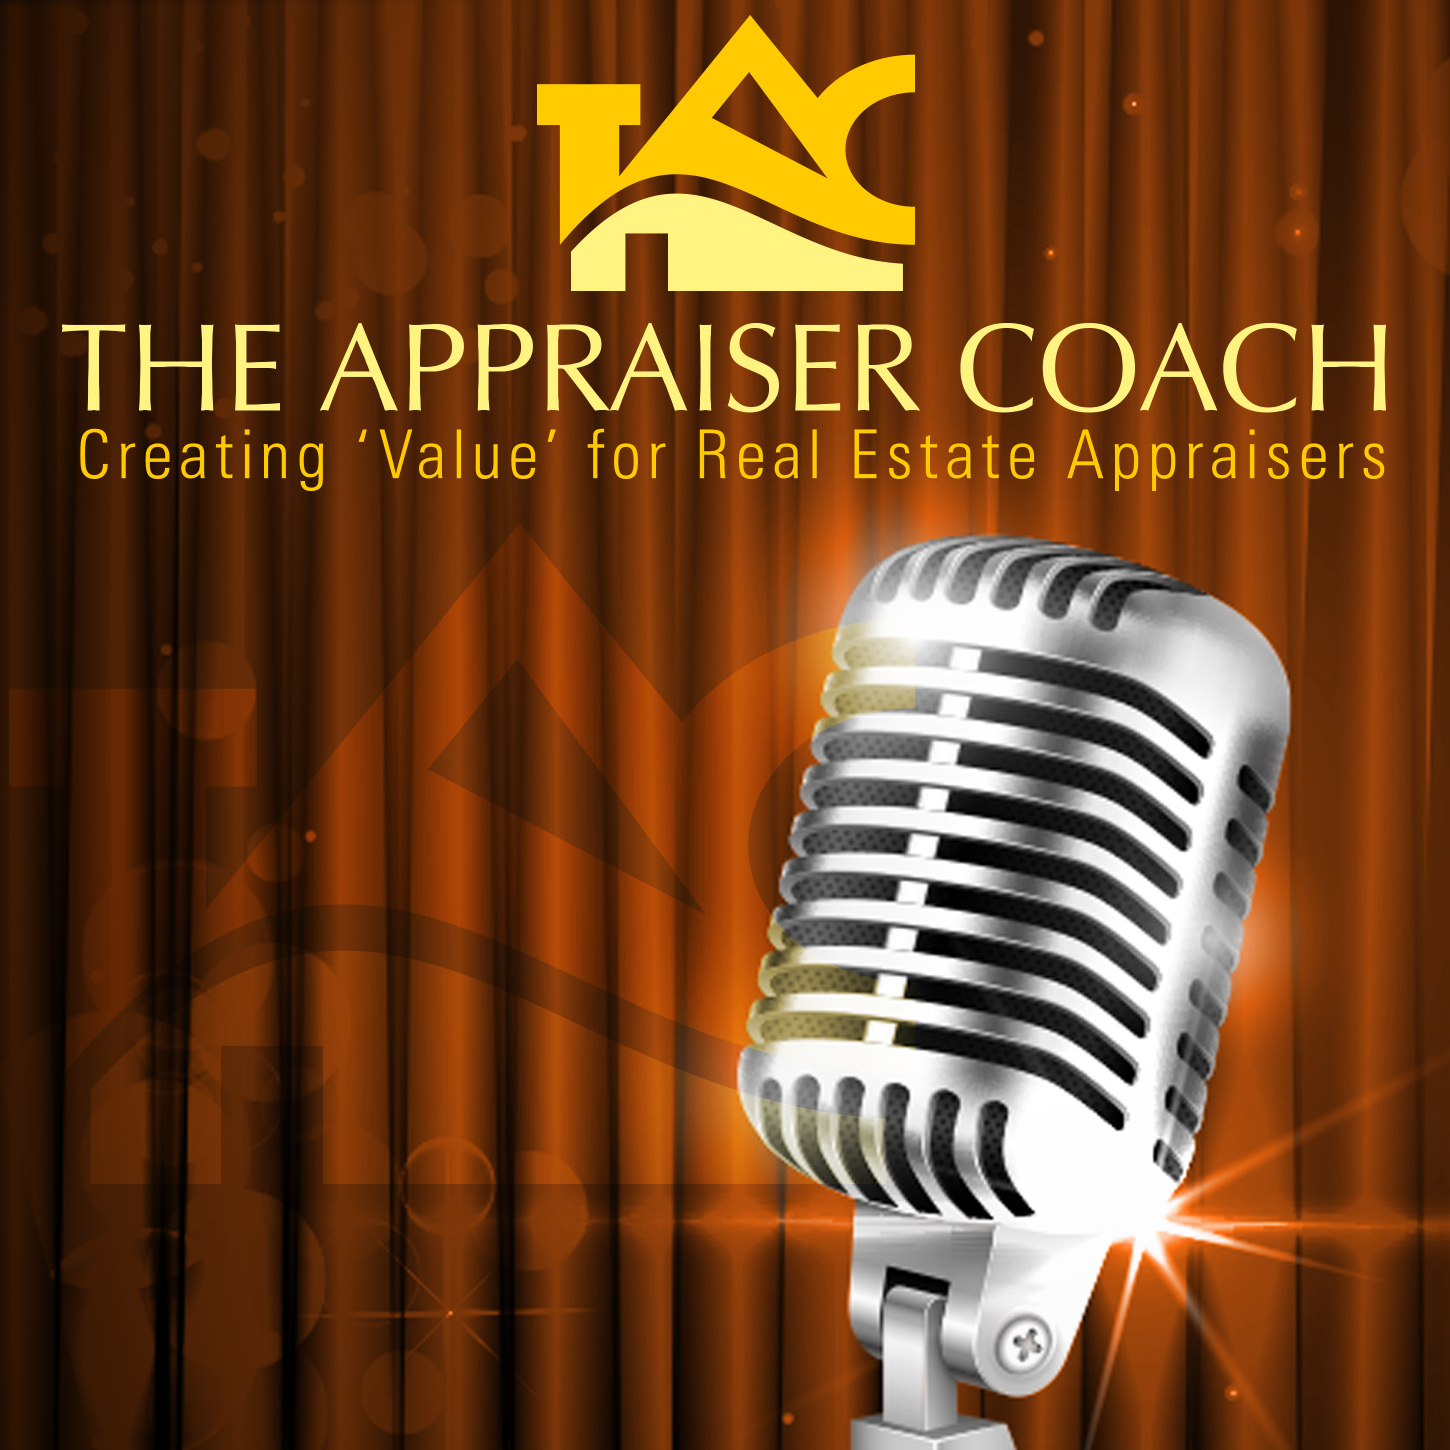 The Appraiser Coach Podcast The Appraiser Coach Podcast ranks right up there with my favorites to listen to.  Dustin brings tips, tricks, ideas and principles to make you a better appraiser.